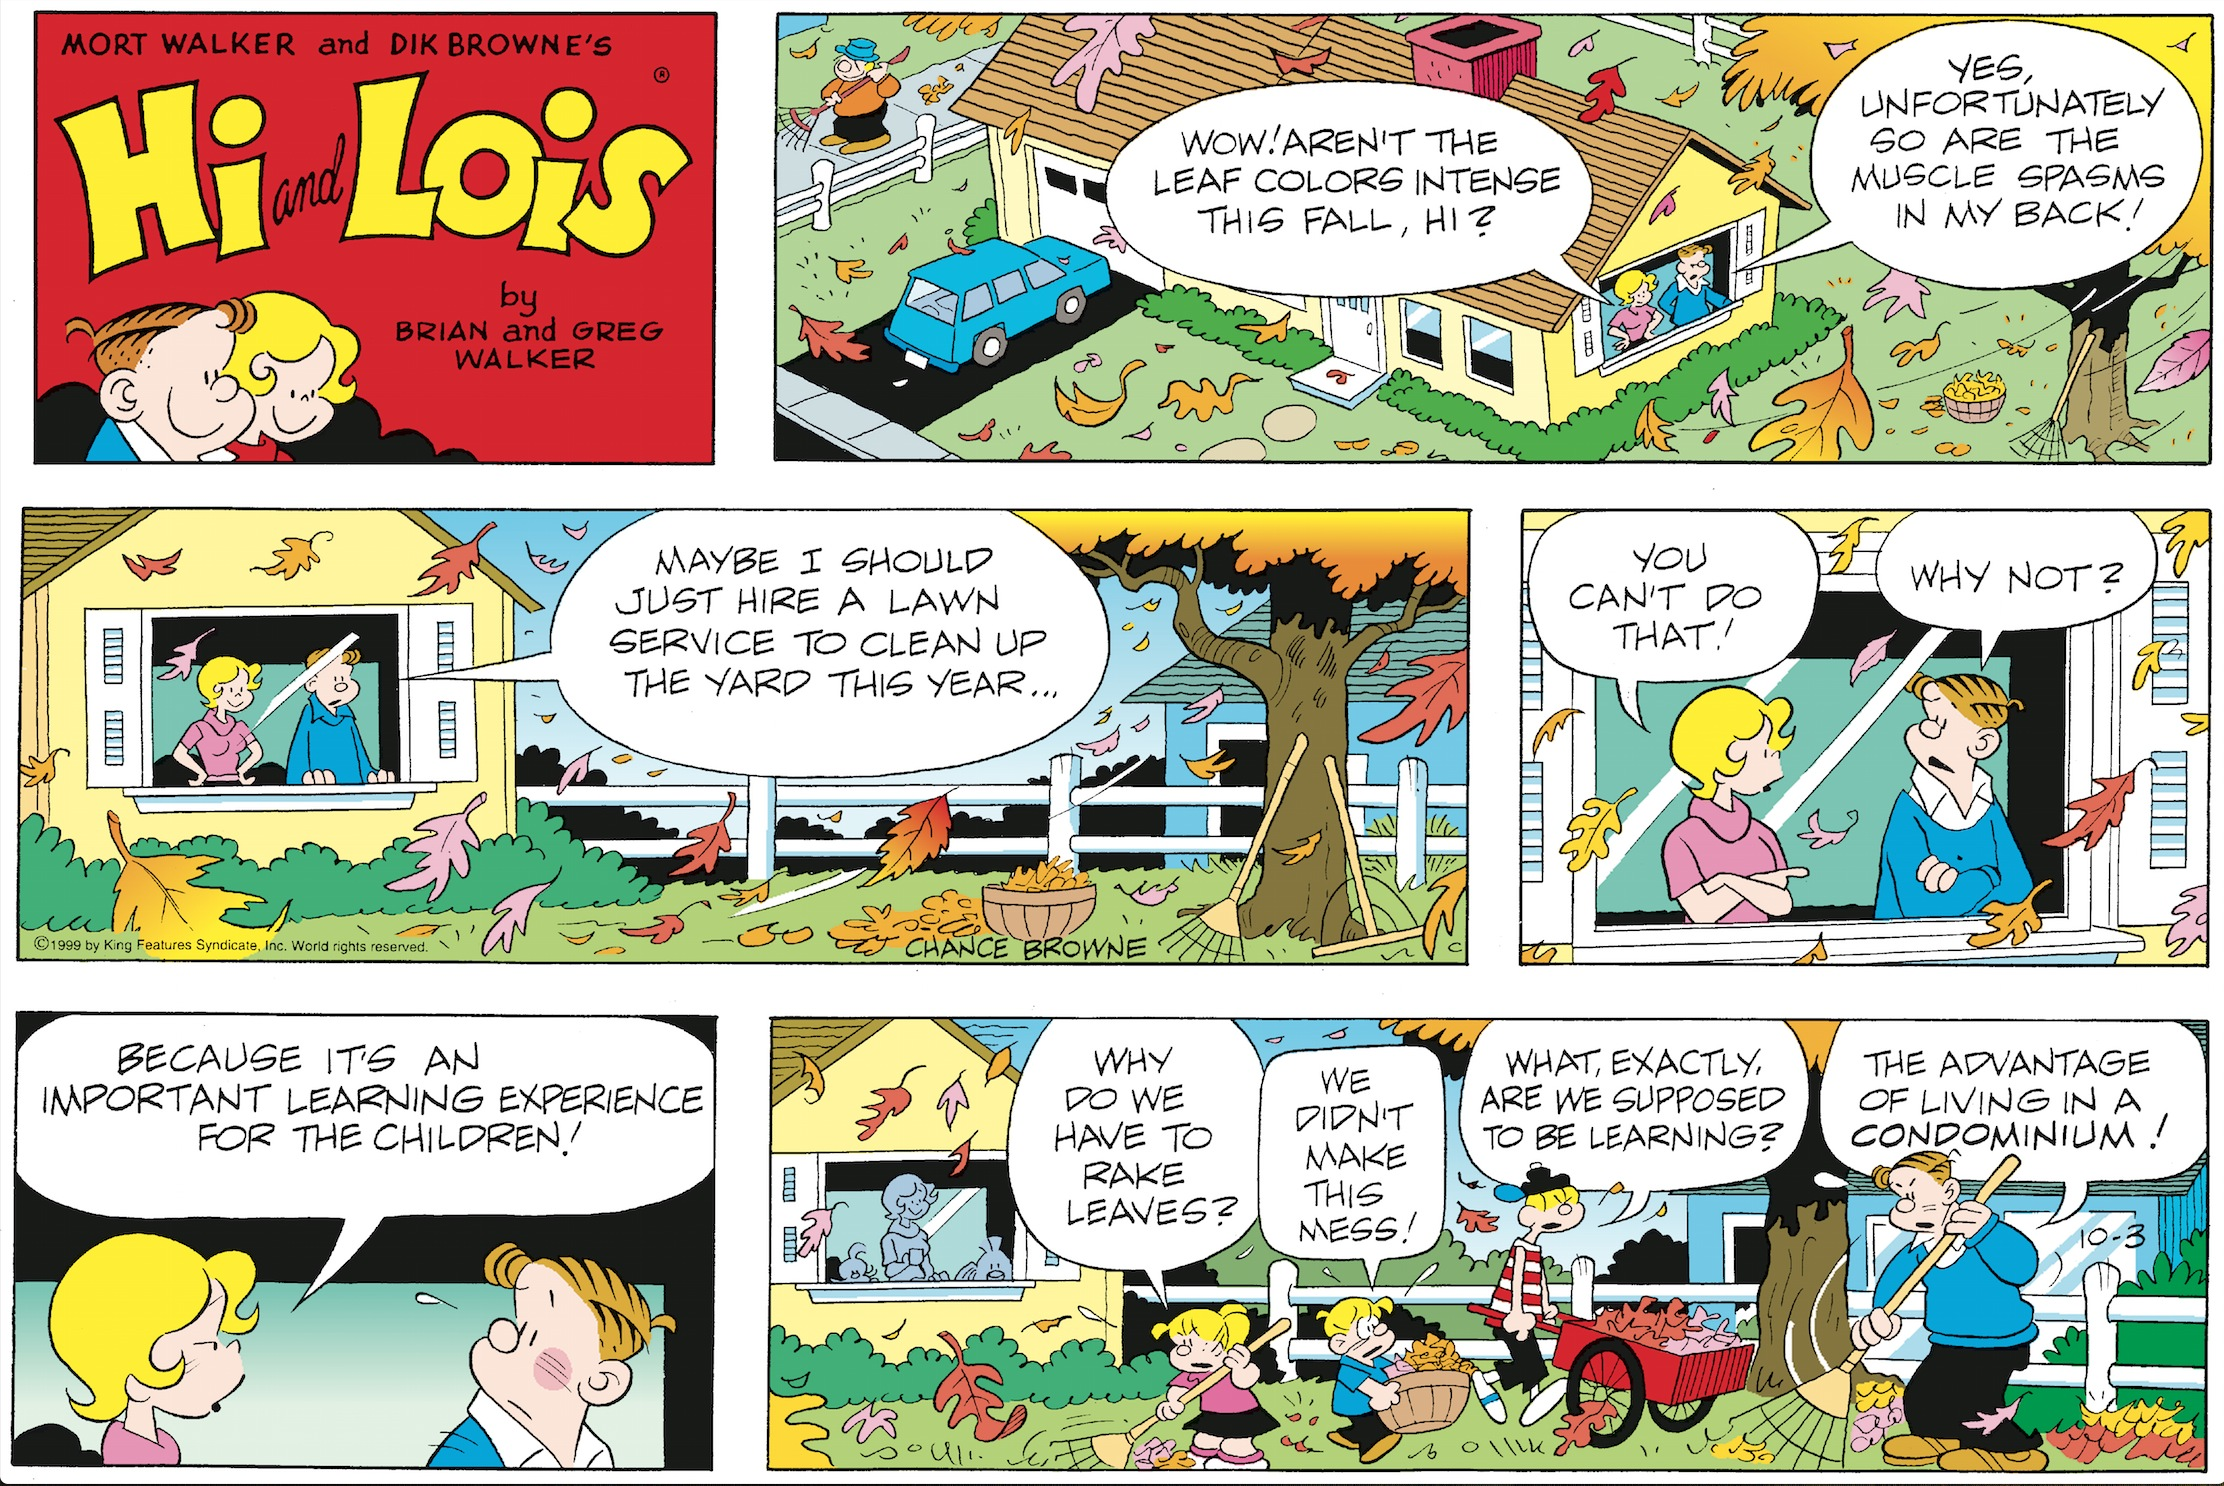 Hi and Lois Sunday page, October 3, 1999.